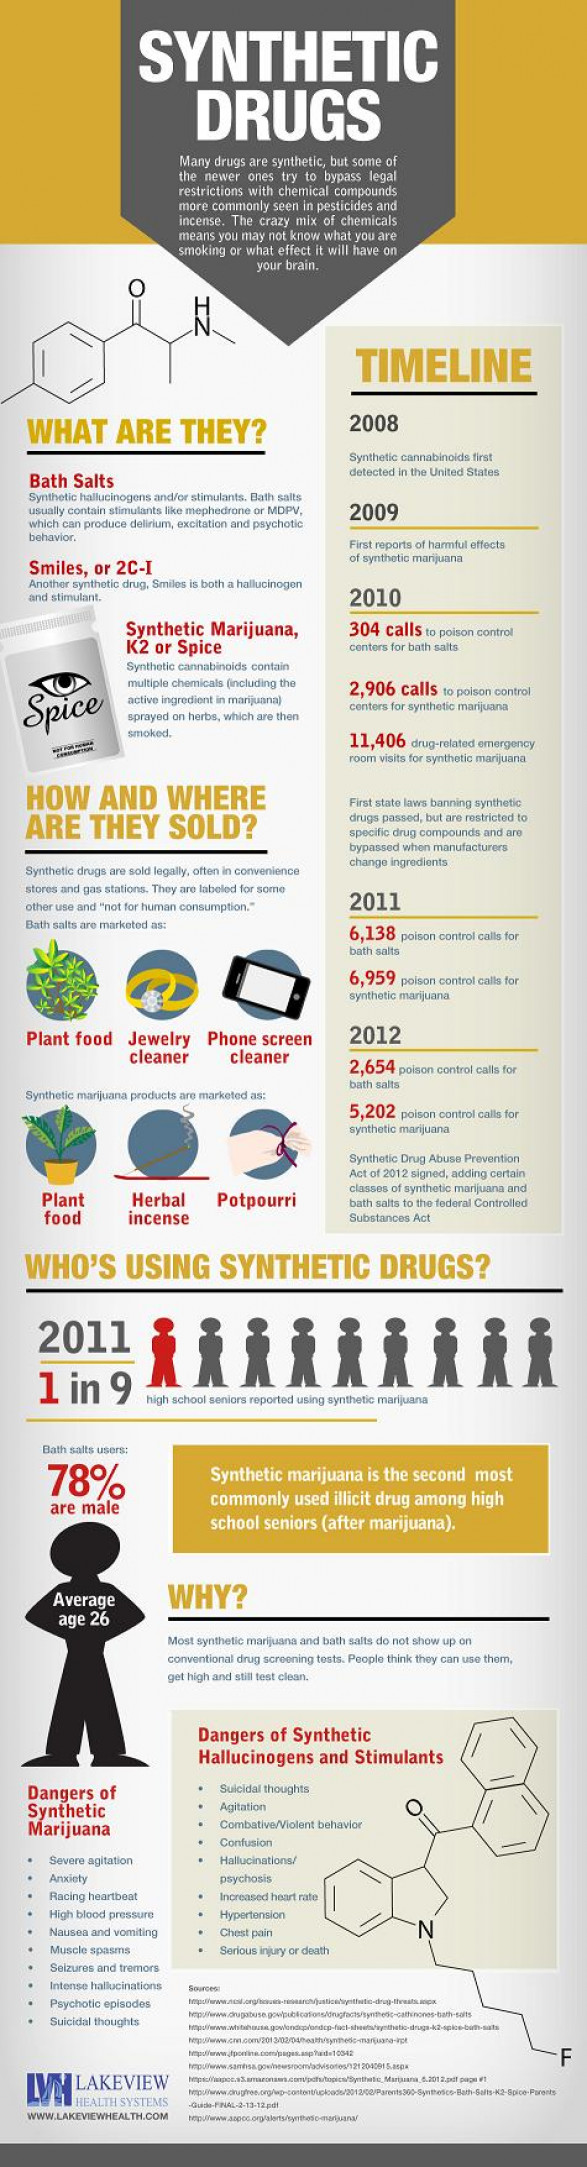 Synthetic Drugs Side Effects And Abuses [INFOGRAPHIC]